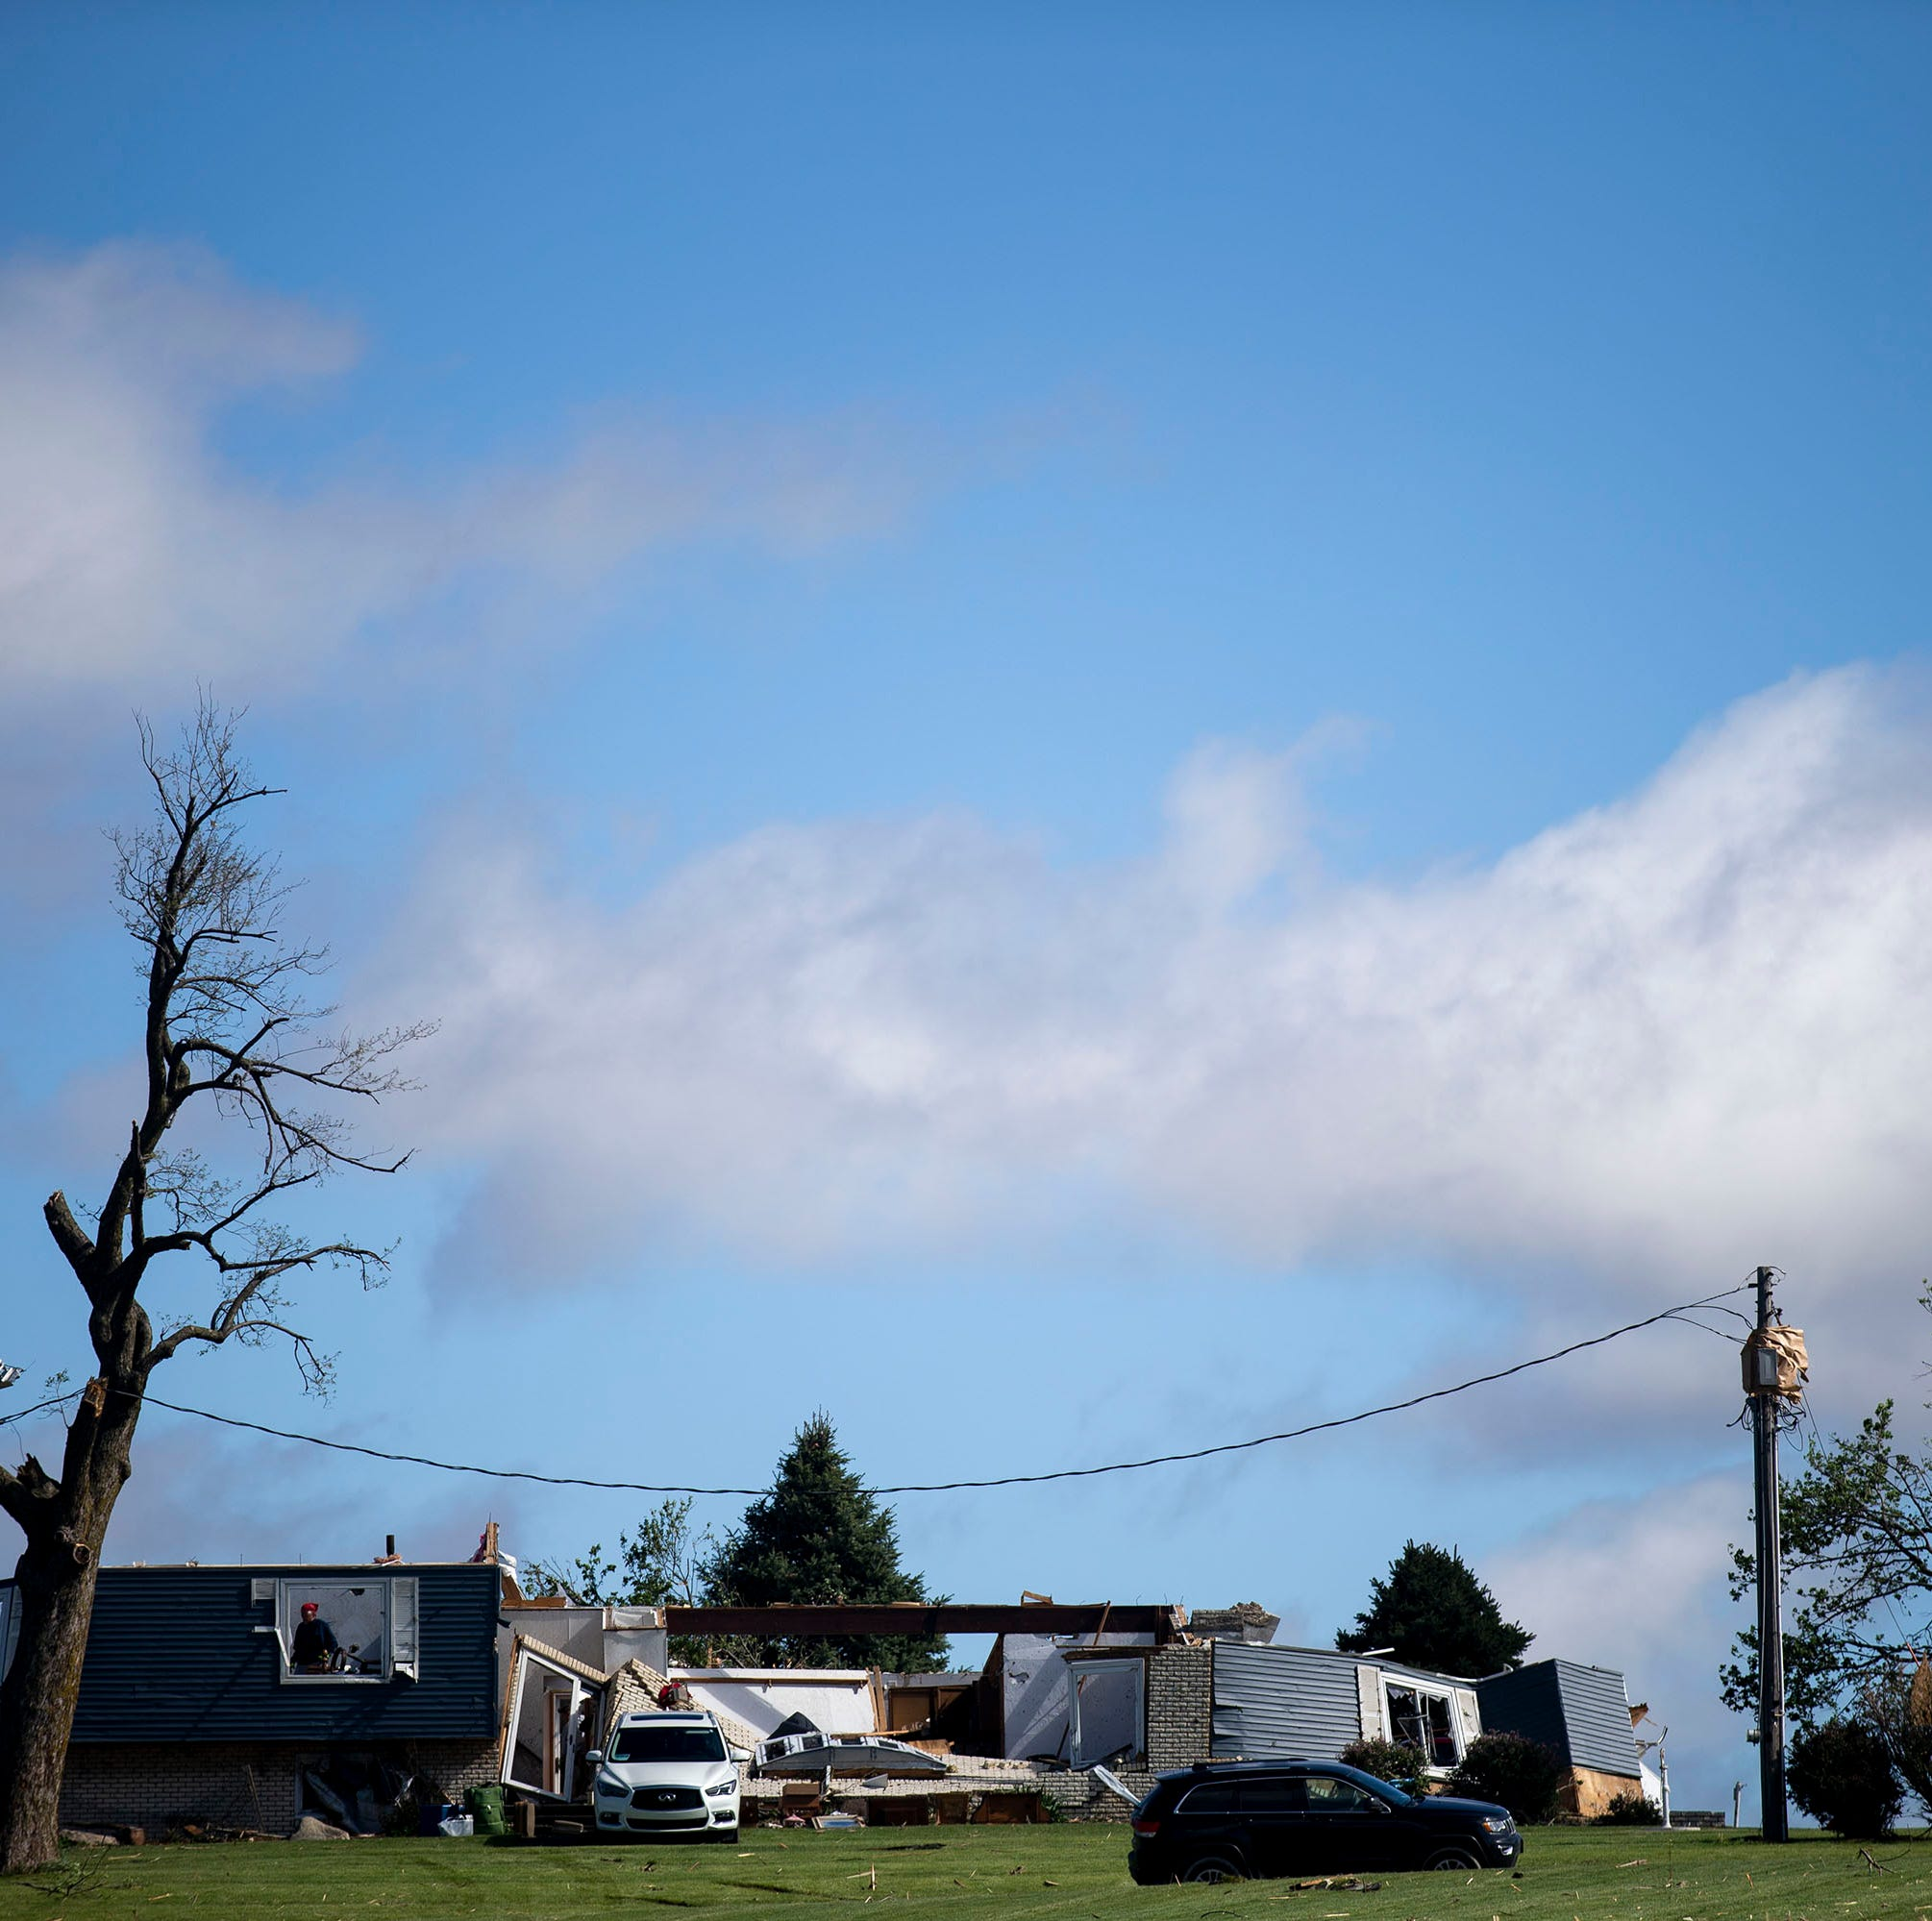 Surprise overnight tornado kills 1 and leaves behind tales of terror in rural central Iowa